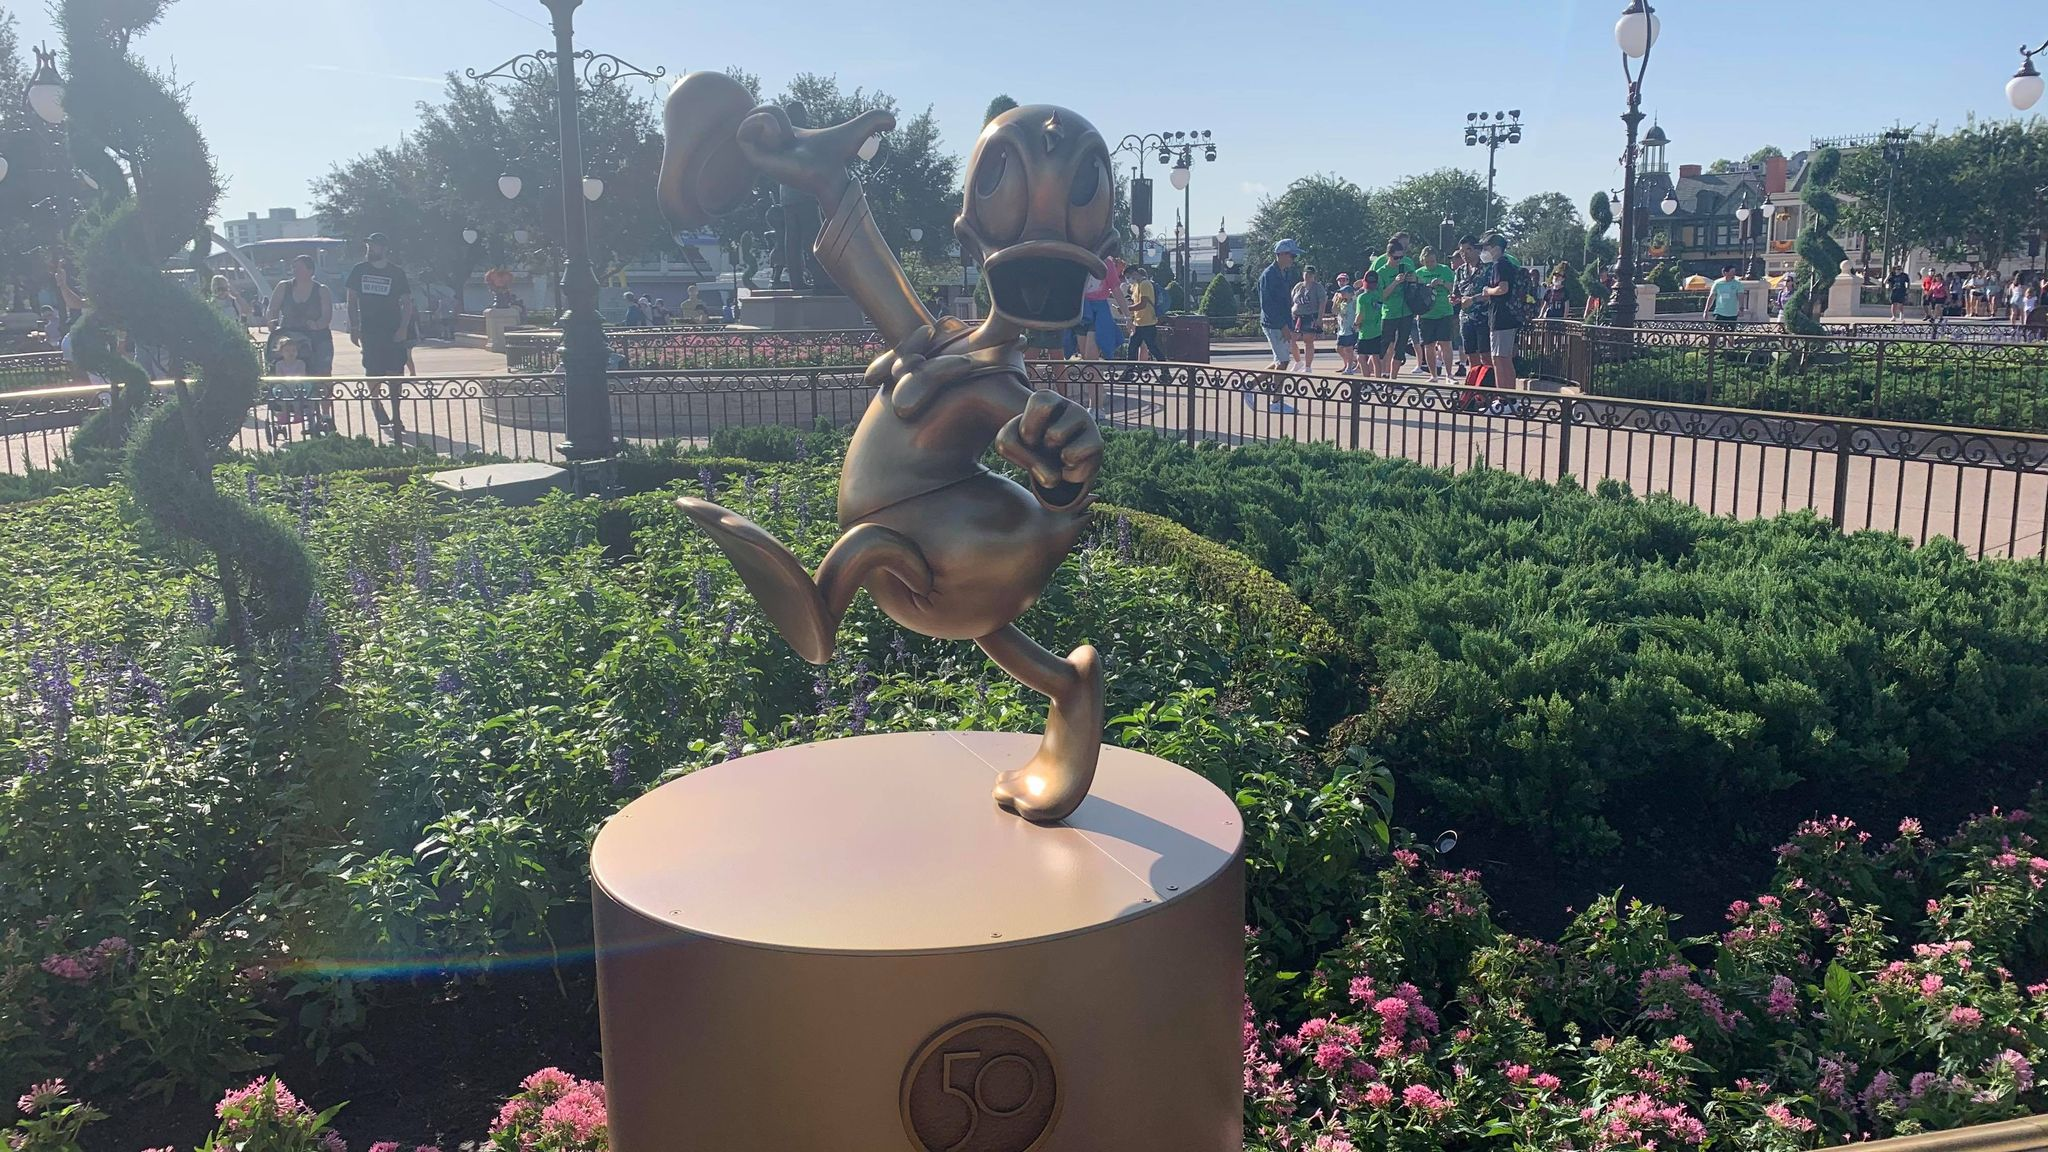 First Look: Disney Fab 50 statues now on display in the Magic Kingdom 17